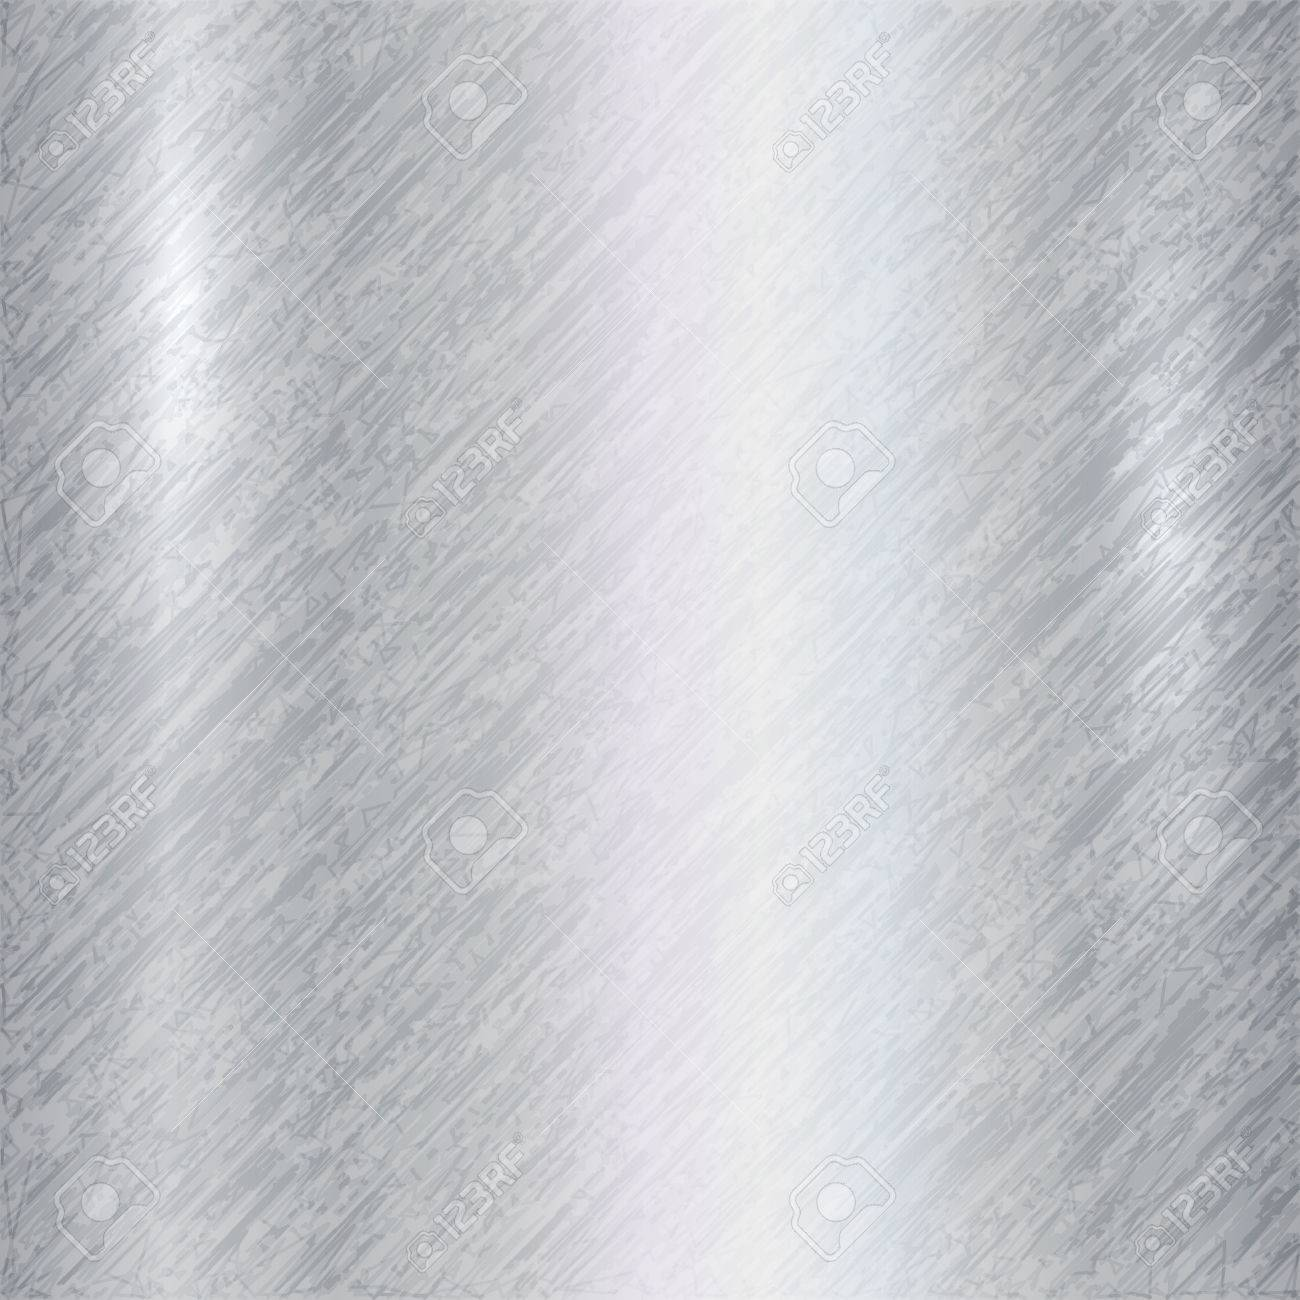 b42e87d54e4c Vector Abstract Metallic Silver Background With Scratches Royalty ...